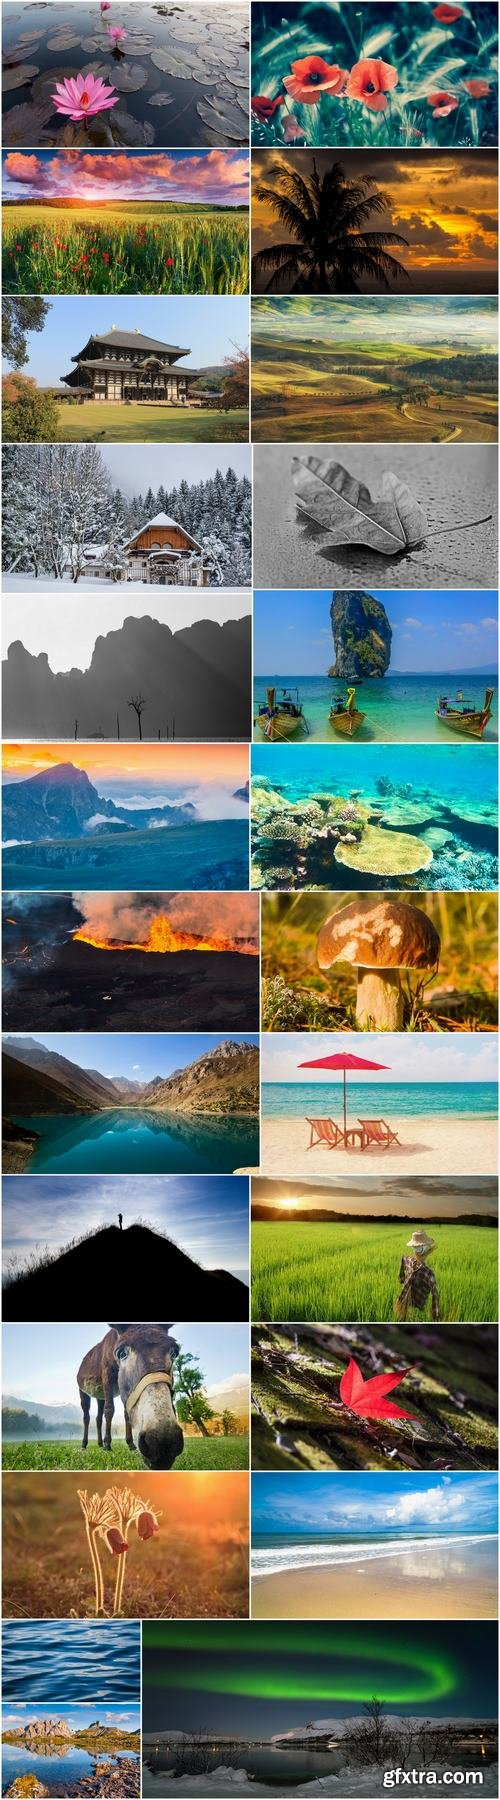 Images of different nature 2-25 HQ Jpeg